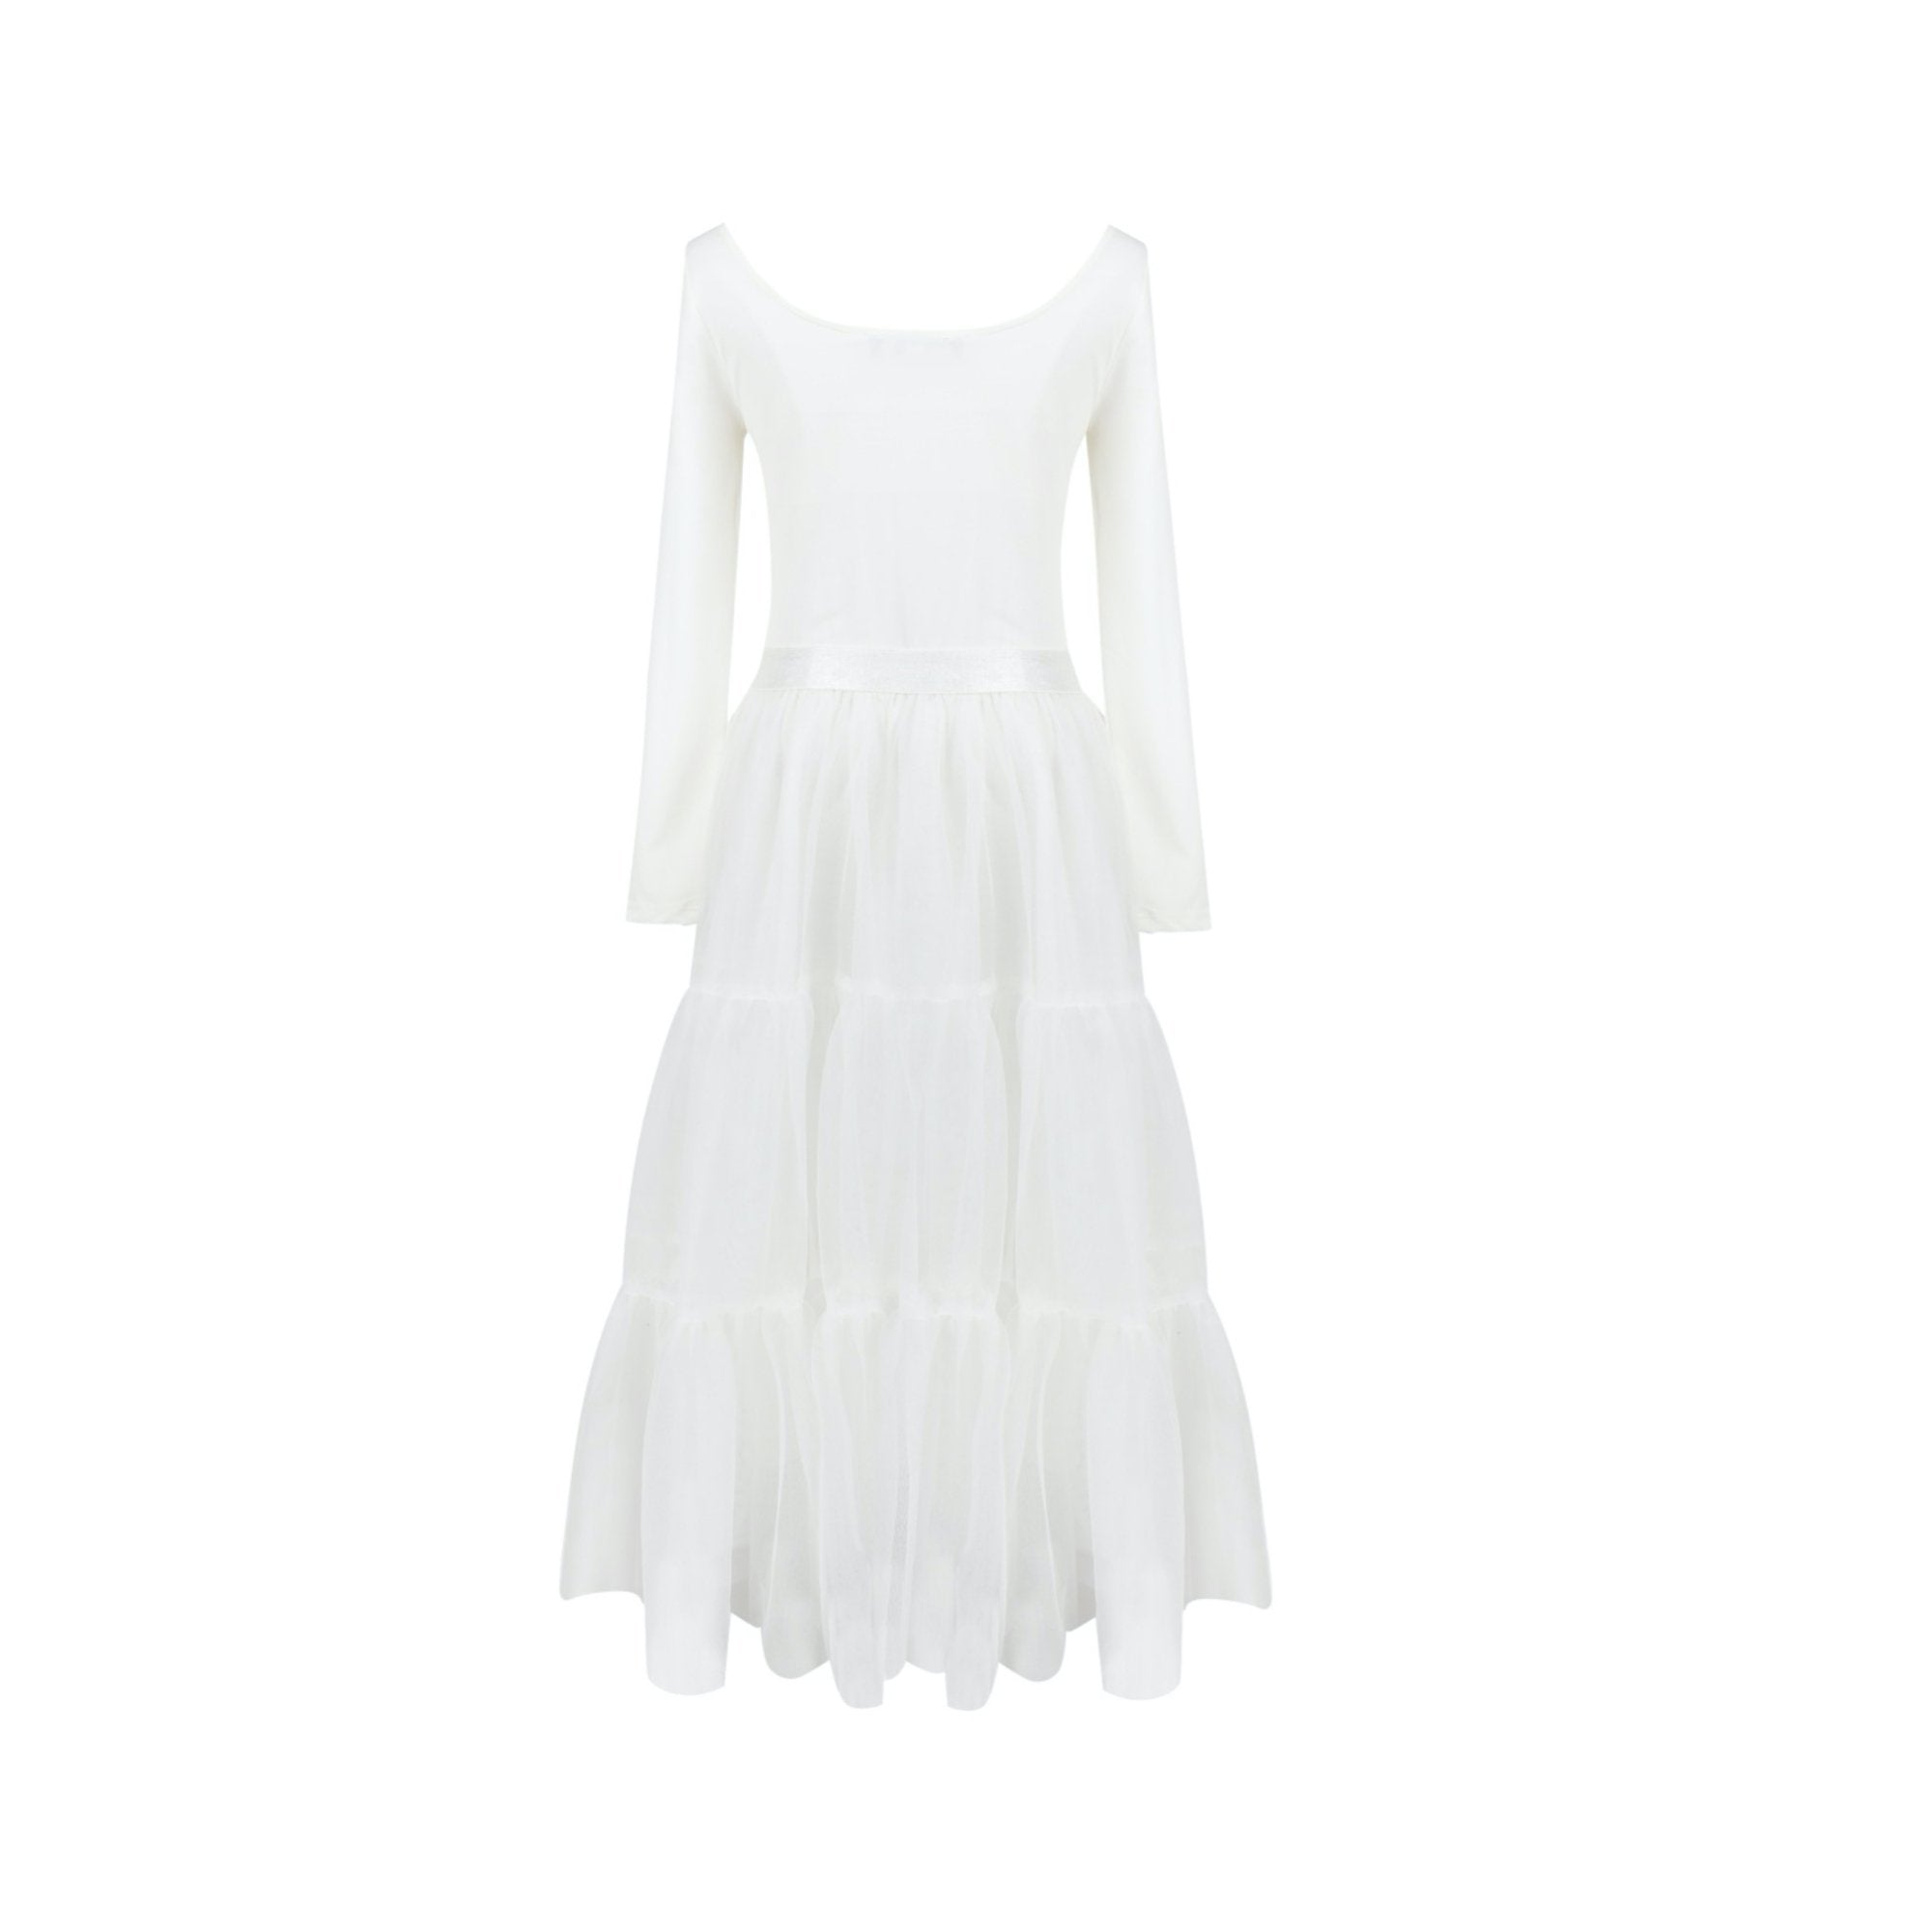 SASA MAX White Mesh Dress | MADA IN CHINA